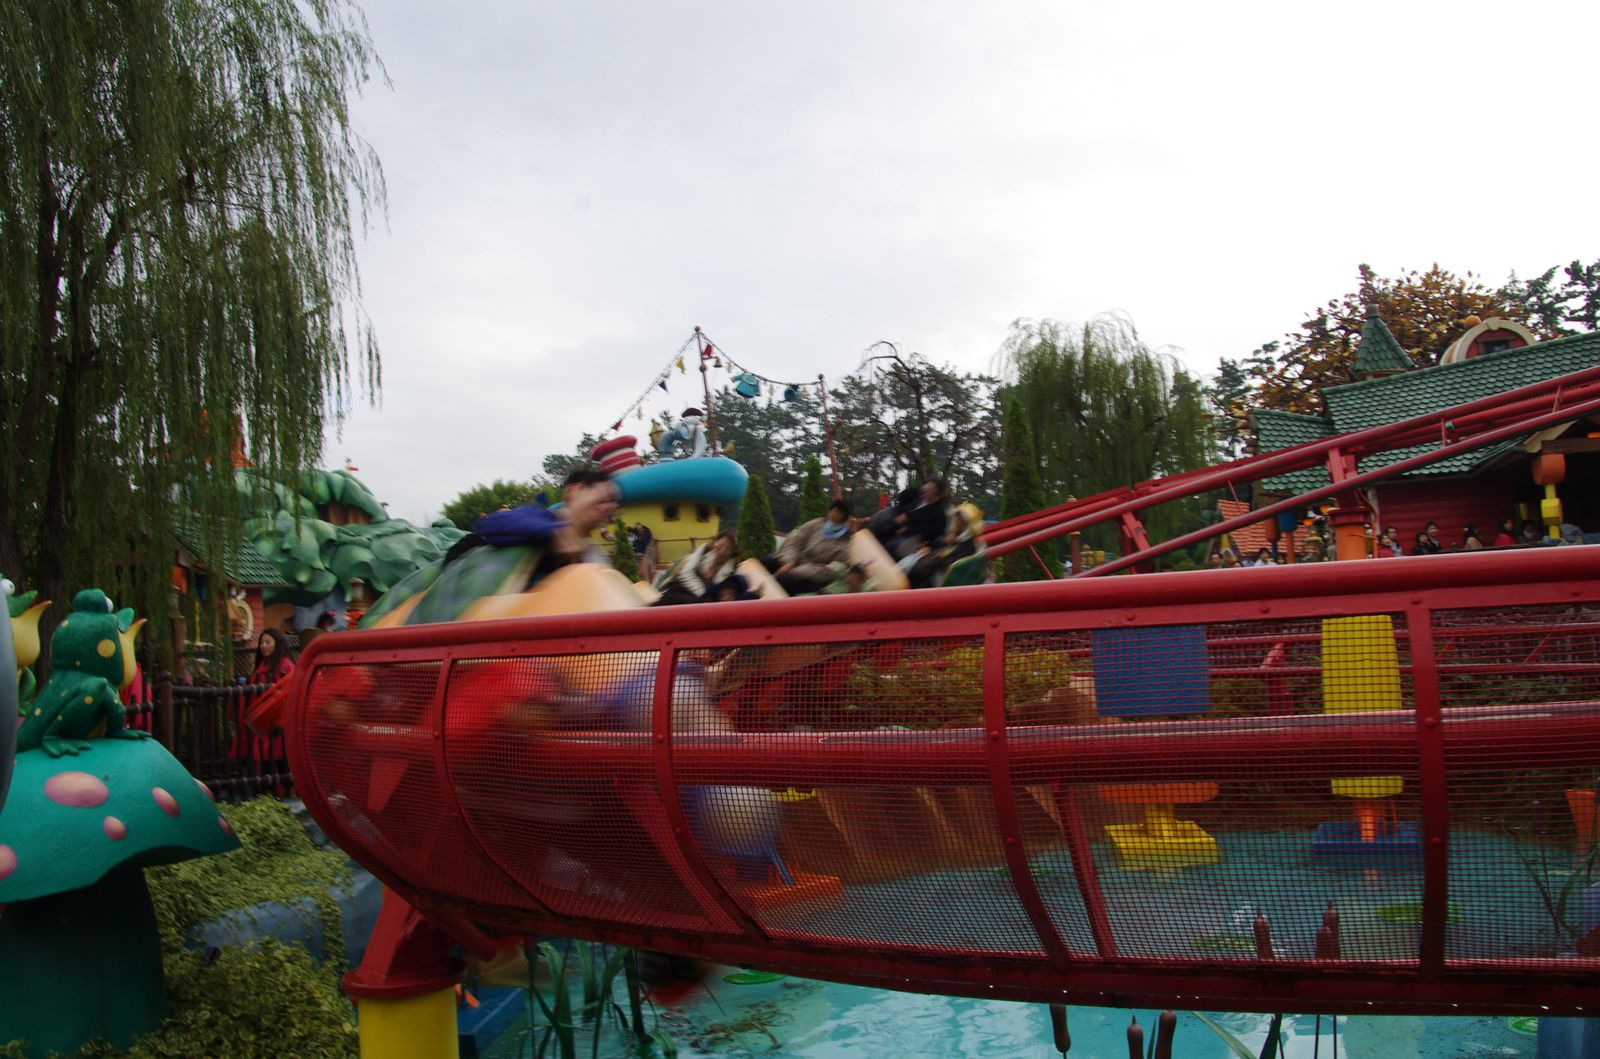 Gadget's Go Coaster (limite plus flippant que le Big thunder mountain !) (désolé pour la photo moche)